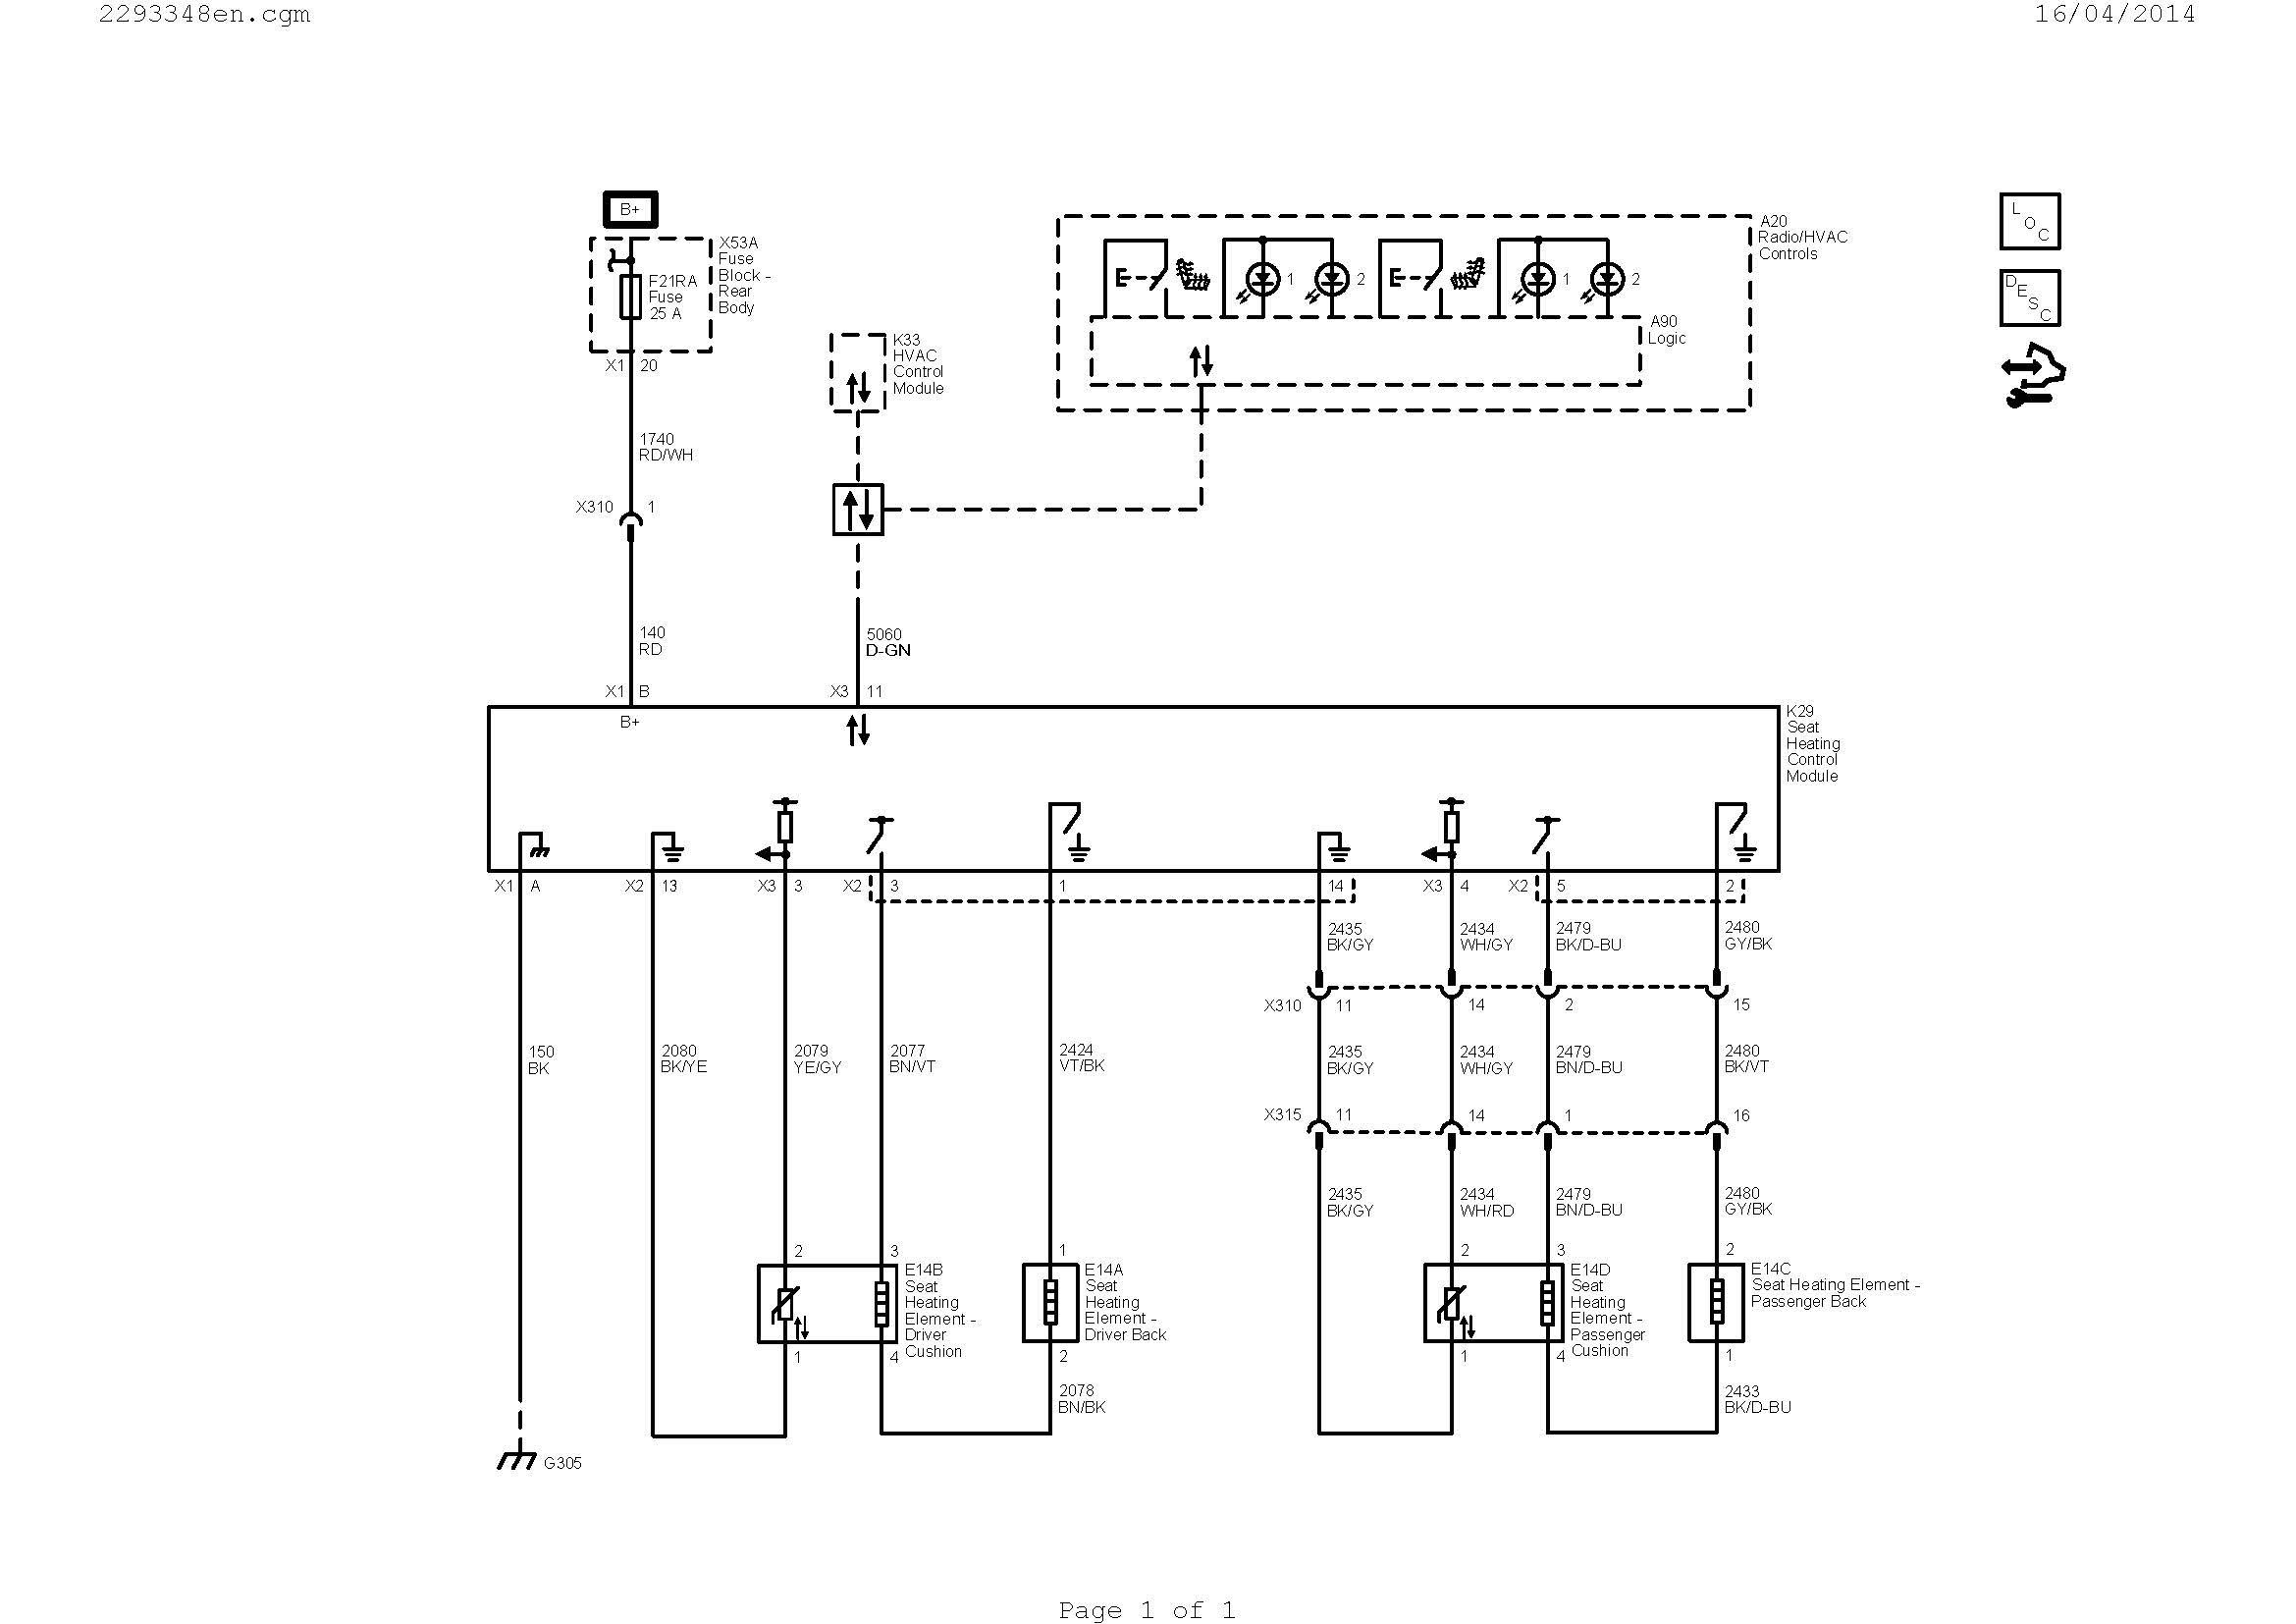 Mitsubishi Mini Split Wiring Diagram | Free Wiring Diagram on wiring diagram for hot water tank, wiring diagram for hot water heater, wiring diagram for electric brakes,